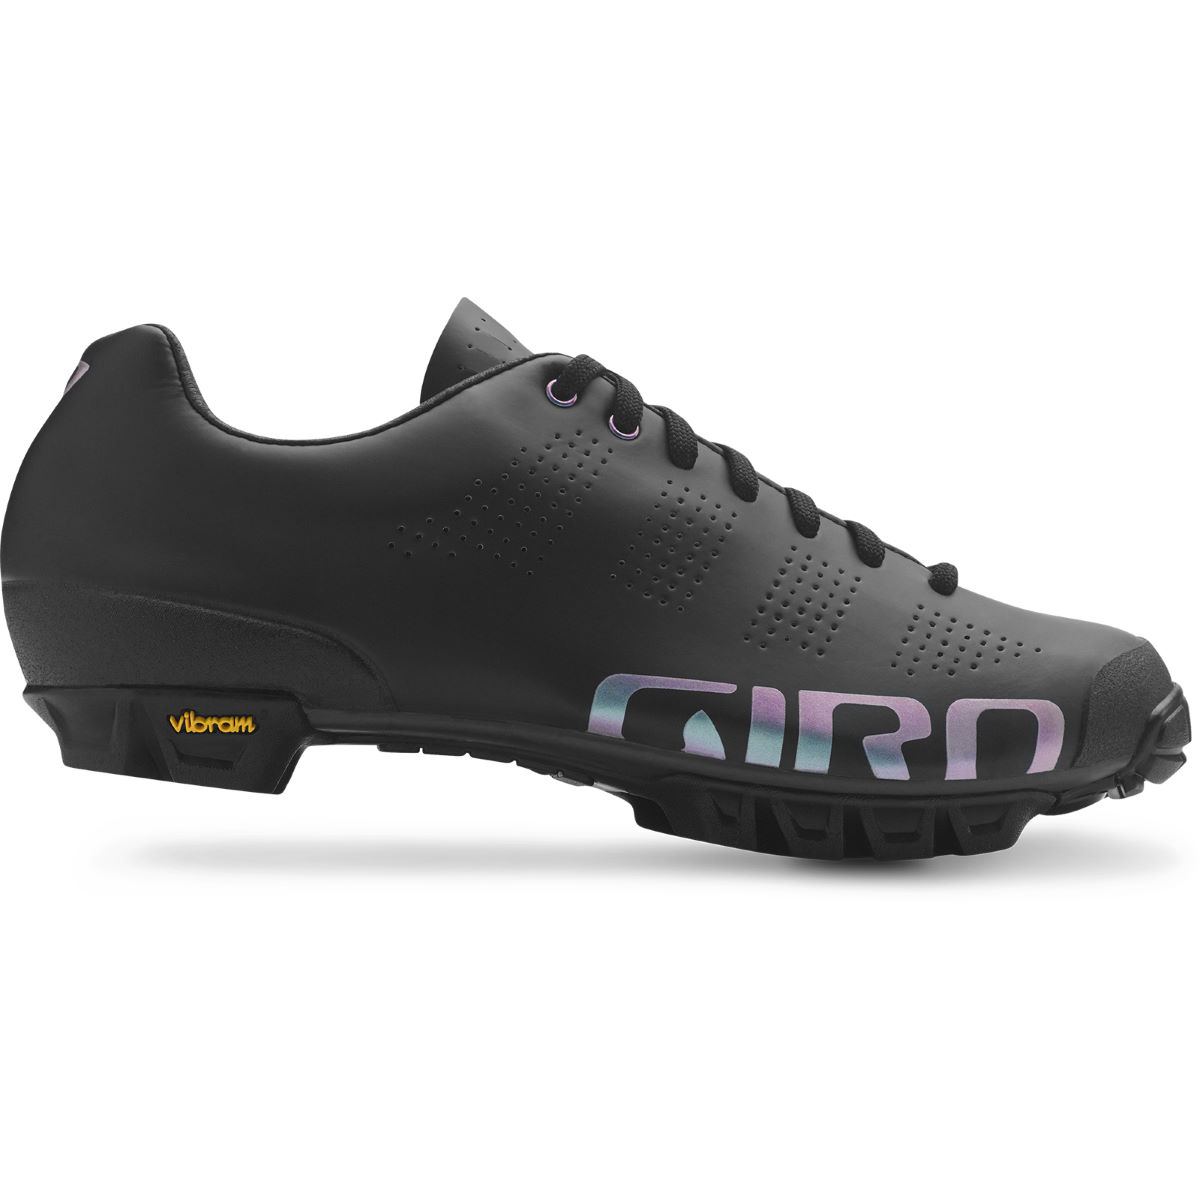 Giro Giro Empire VR90 Women